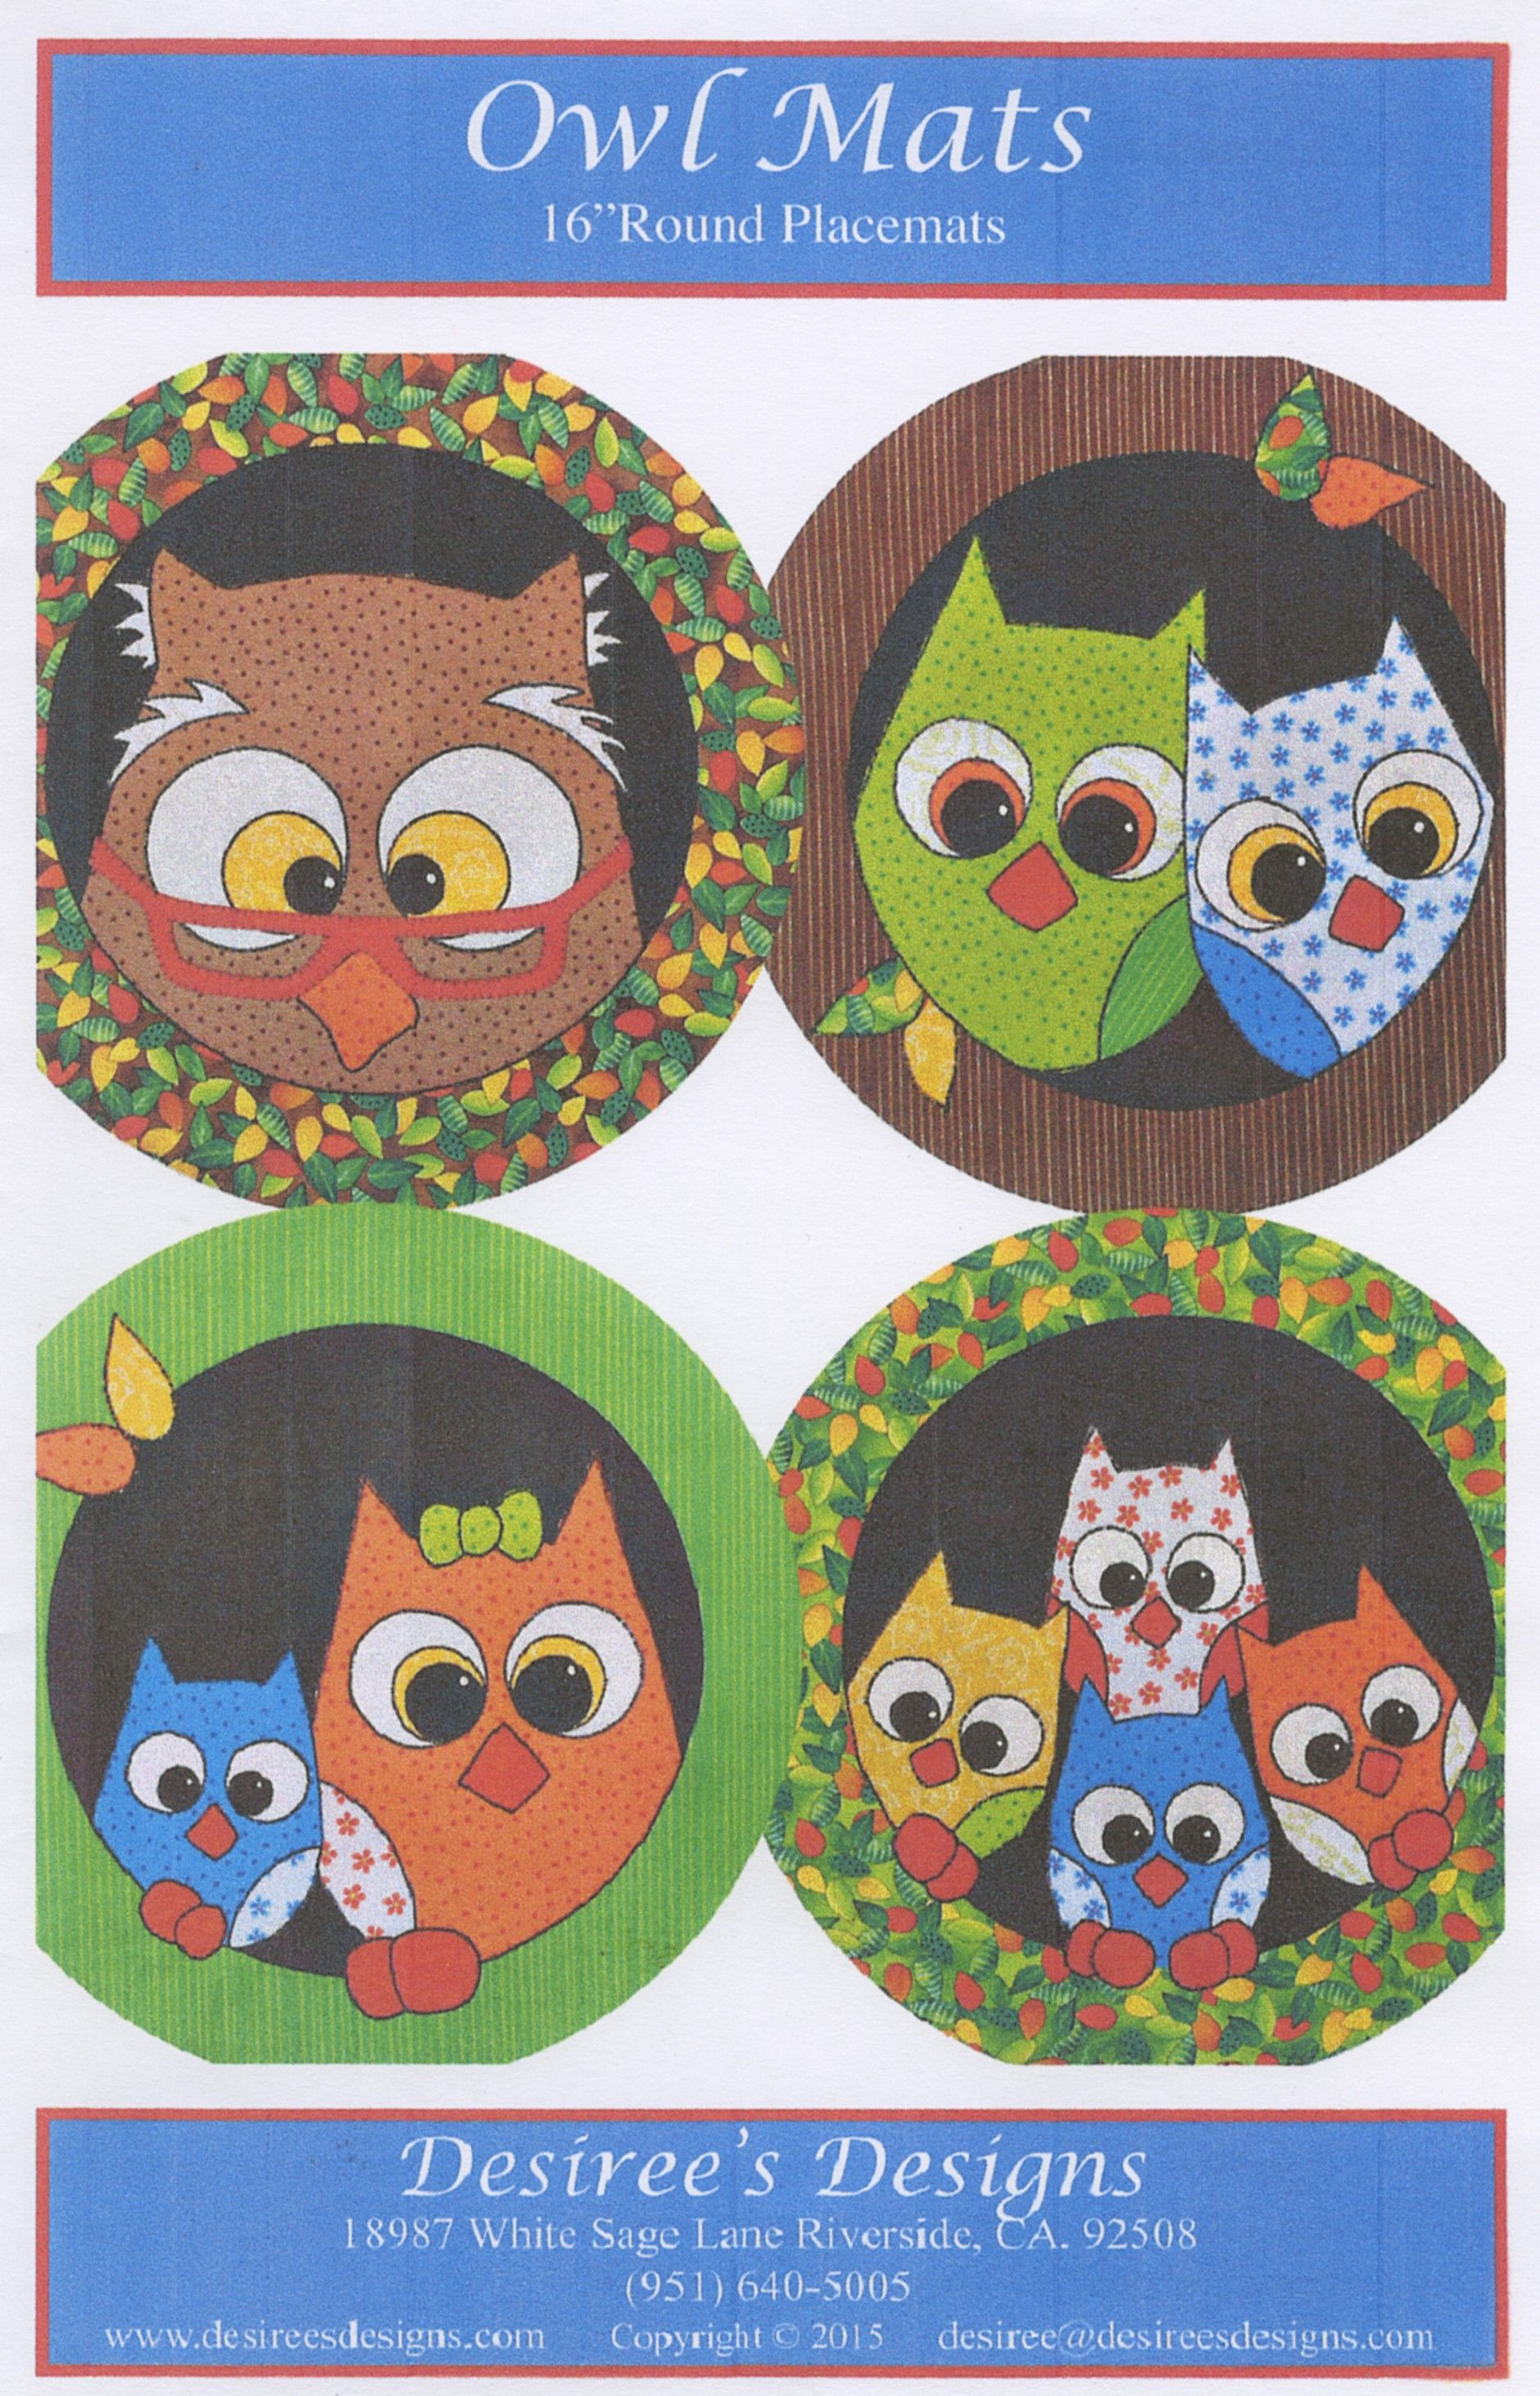 Owl Mats By Habicht, Desiree Quilt patterns, Owl sewing